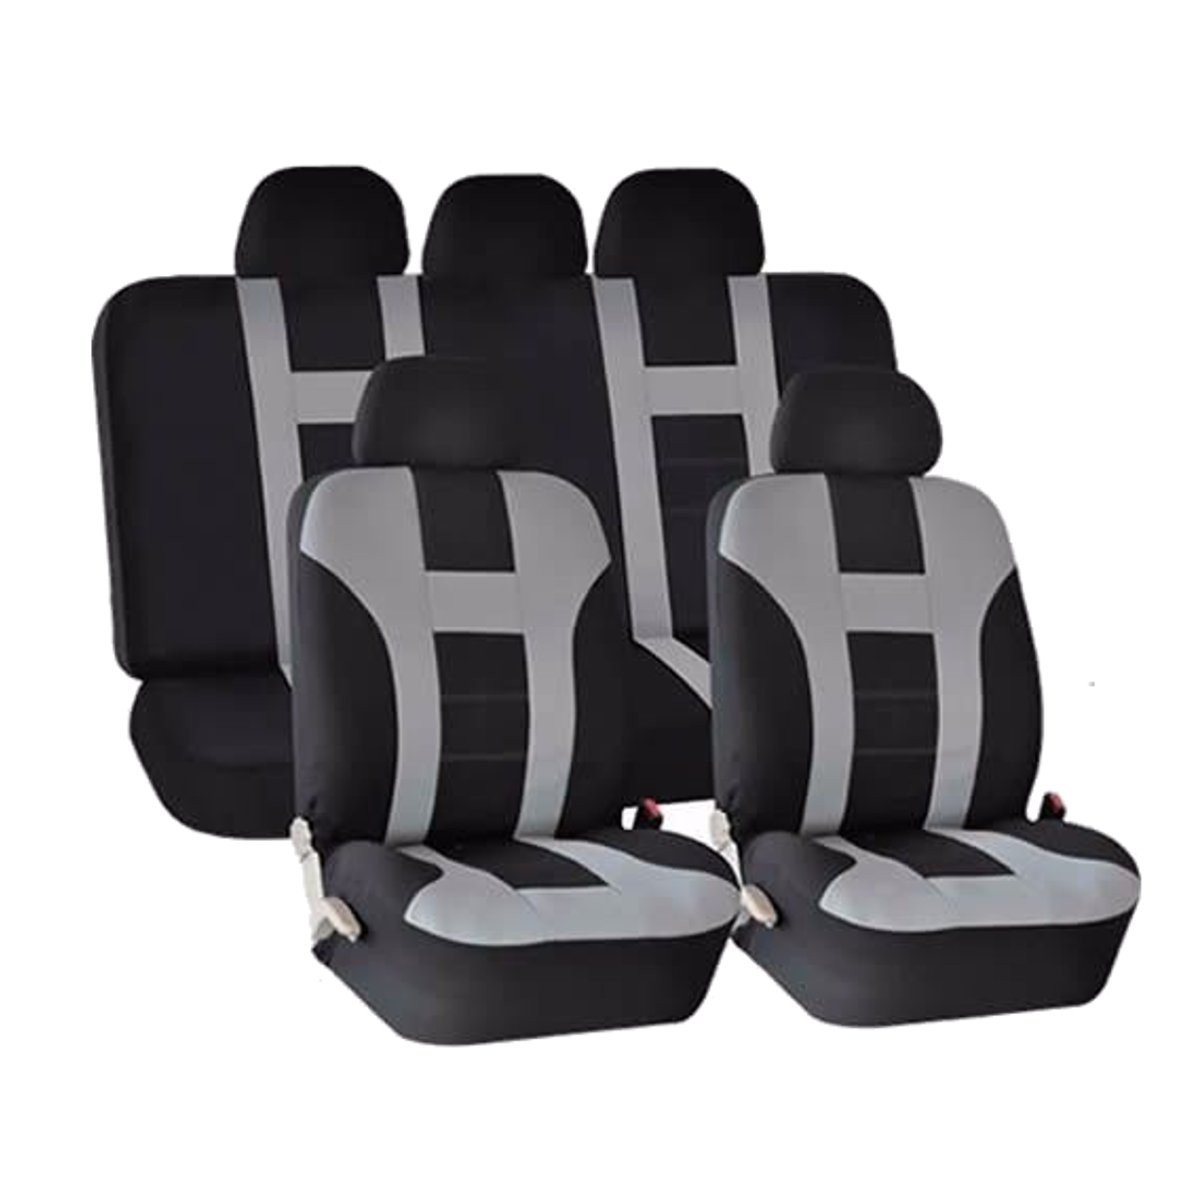 Exercise Seat Covers Car